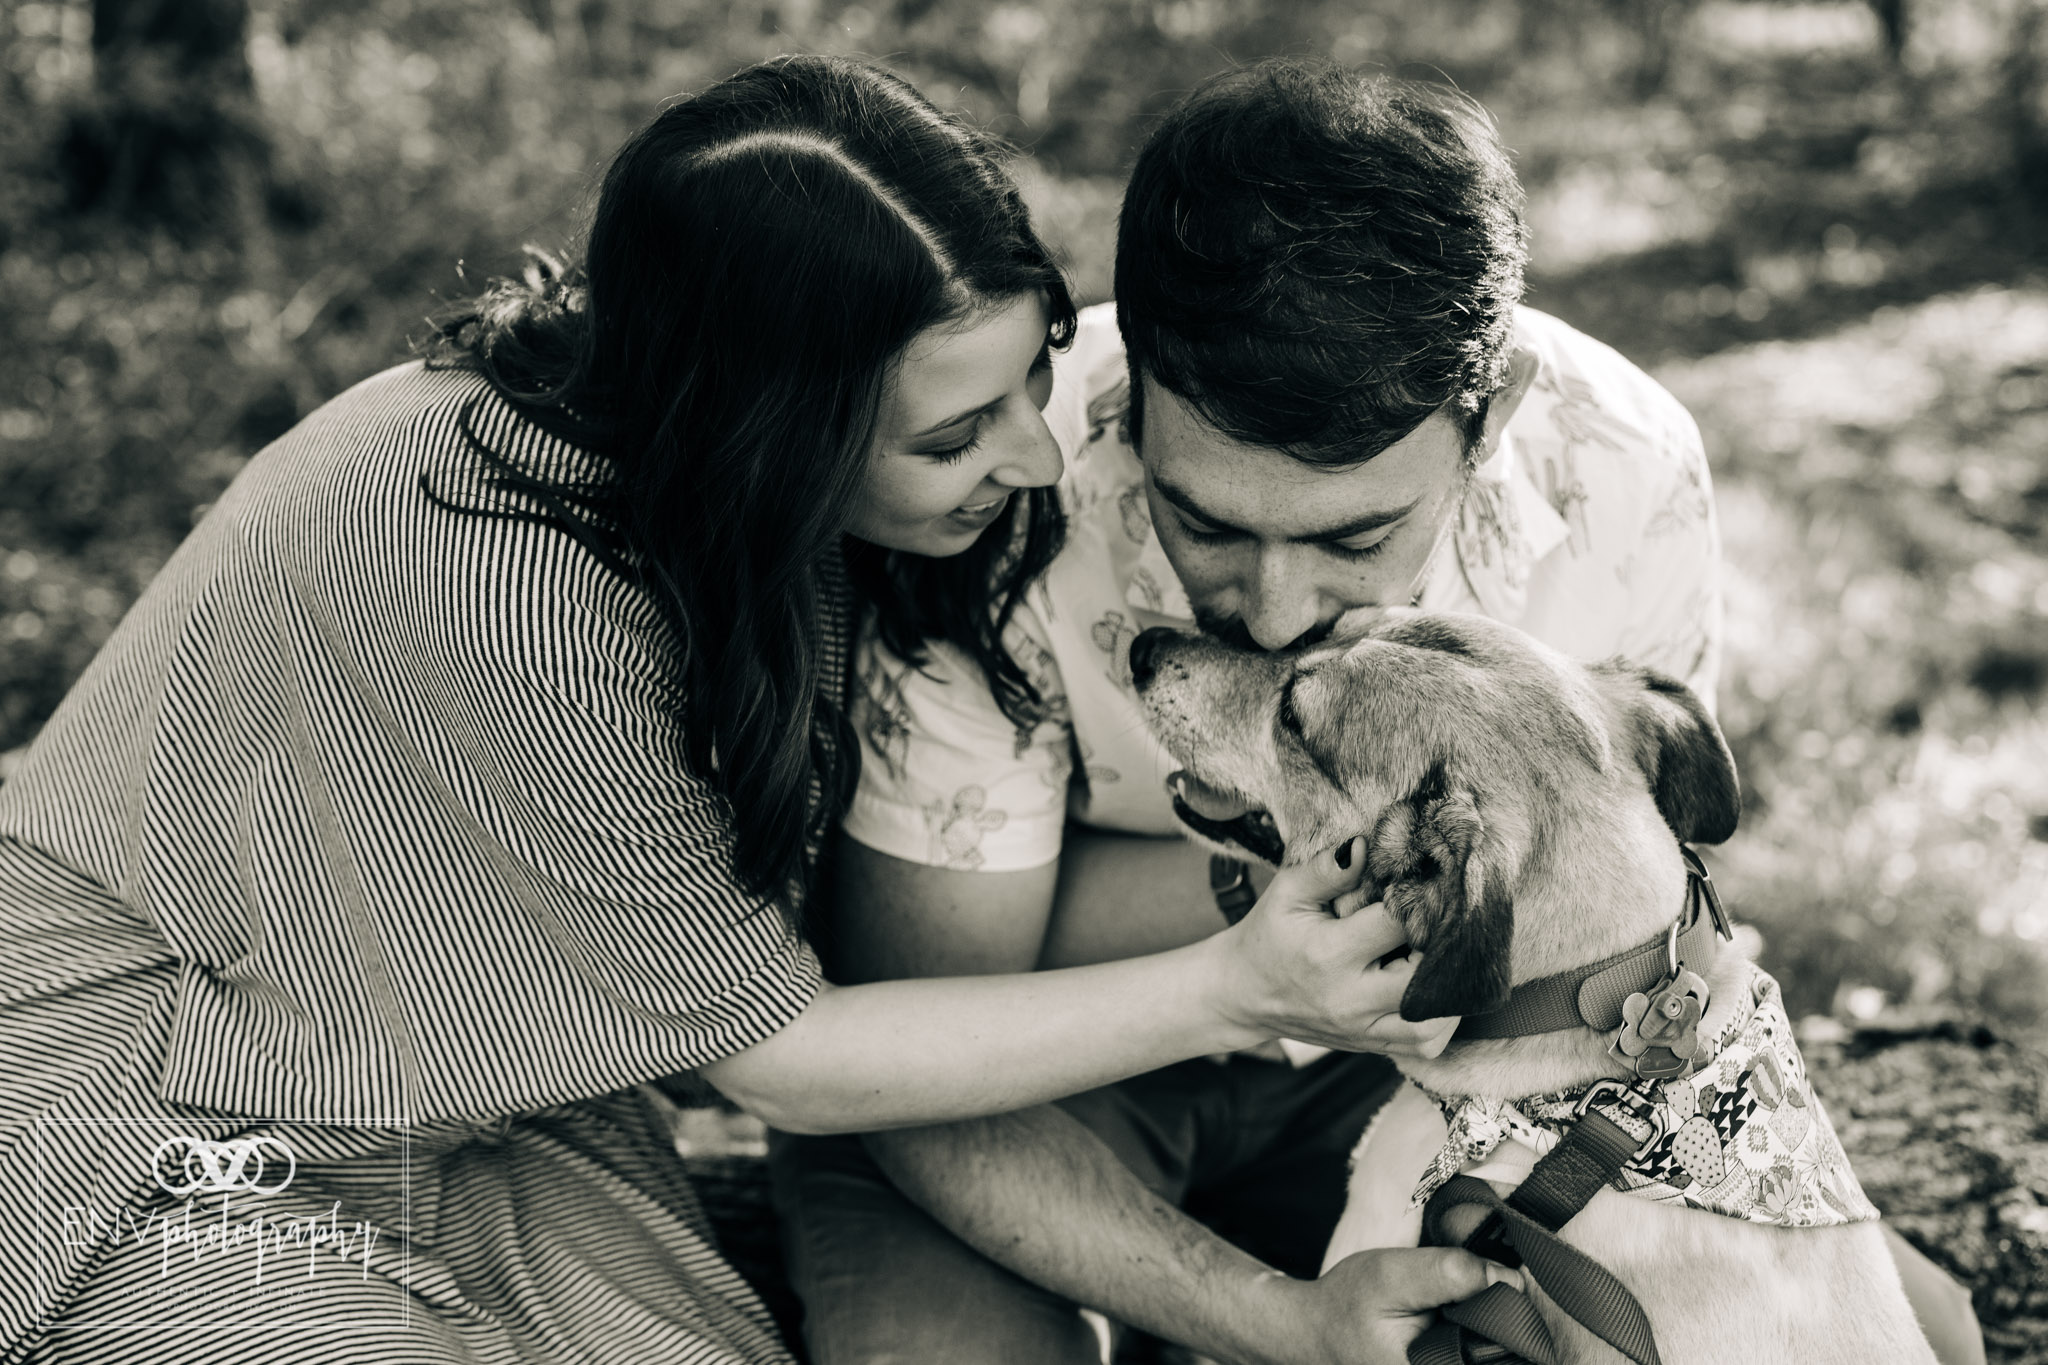 mount vernon columbus mansfield ohio engagement family photographer (6).jpg